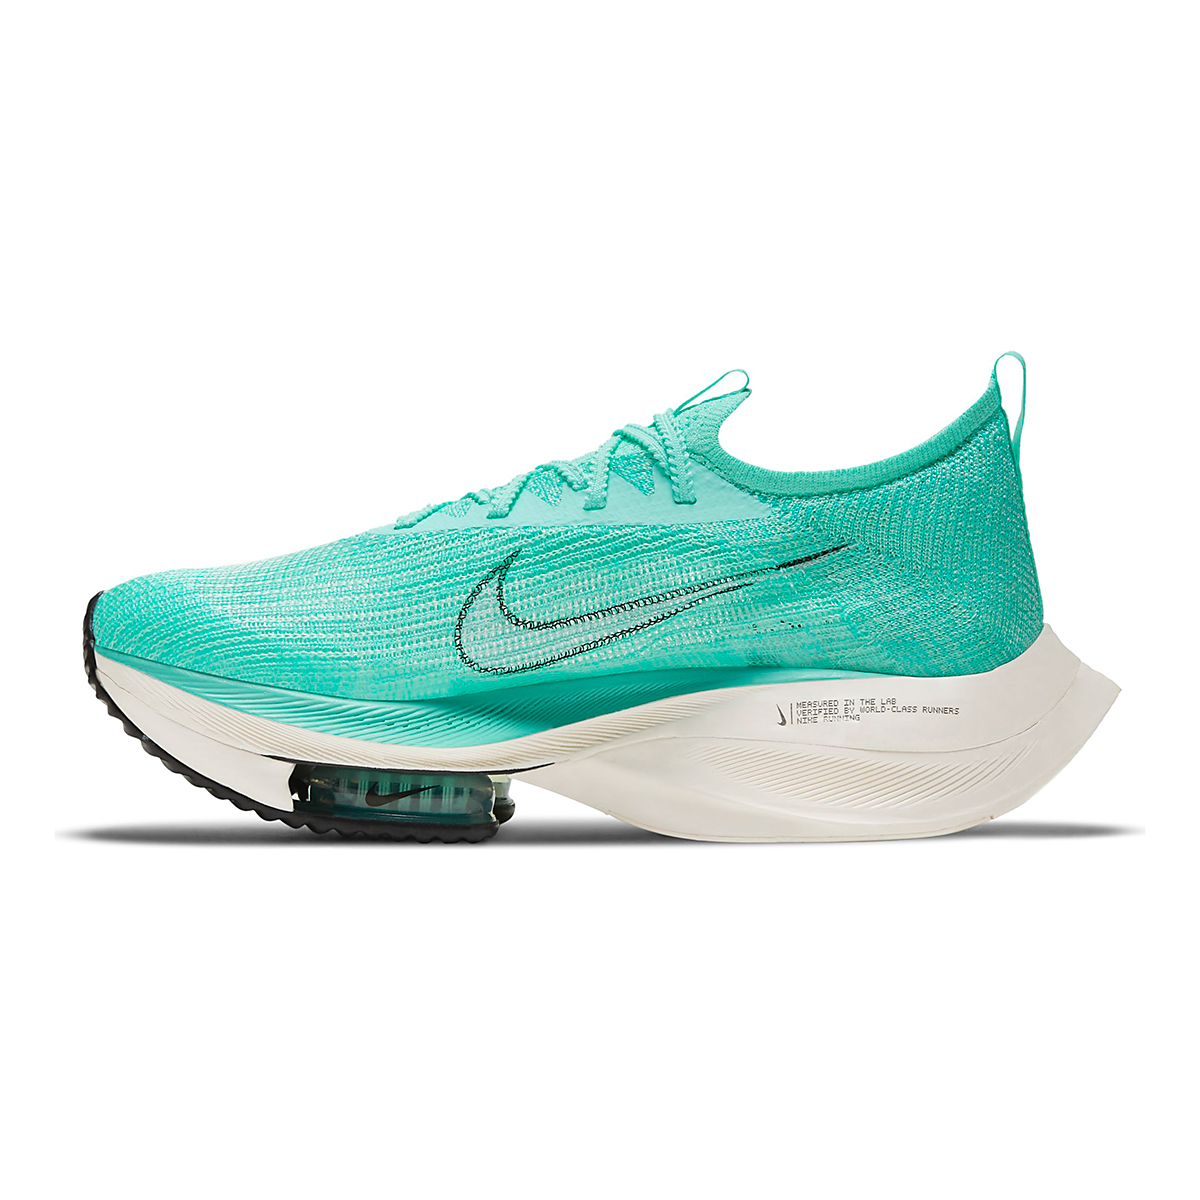 Men's Nike Air Zoom Alphafly Next% Running Shoe - Color: Hyper Turq/White-Black-Oracle Aqua - Size: 6 - Width: Regular, Hyper Turq/White-Black-Oracle Aqua, large, image 2